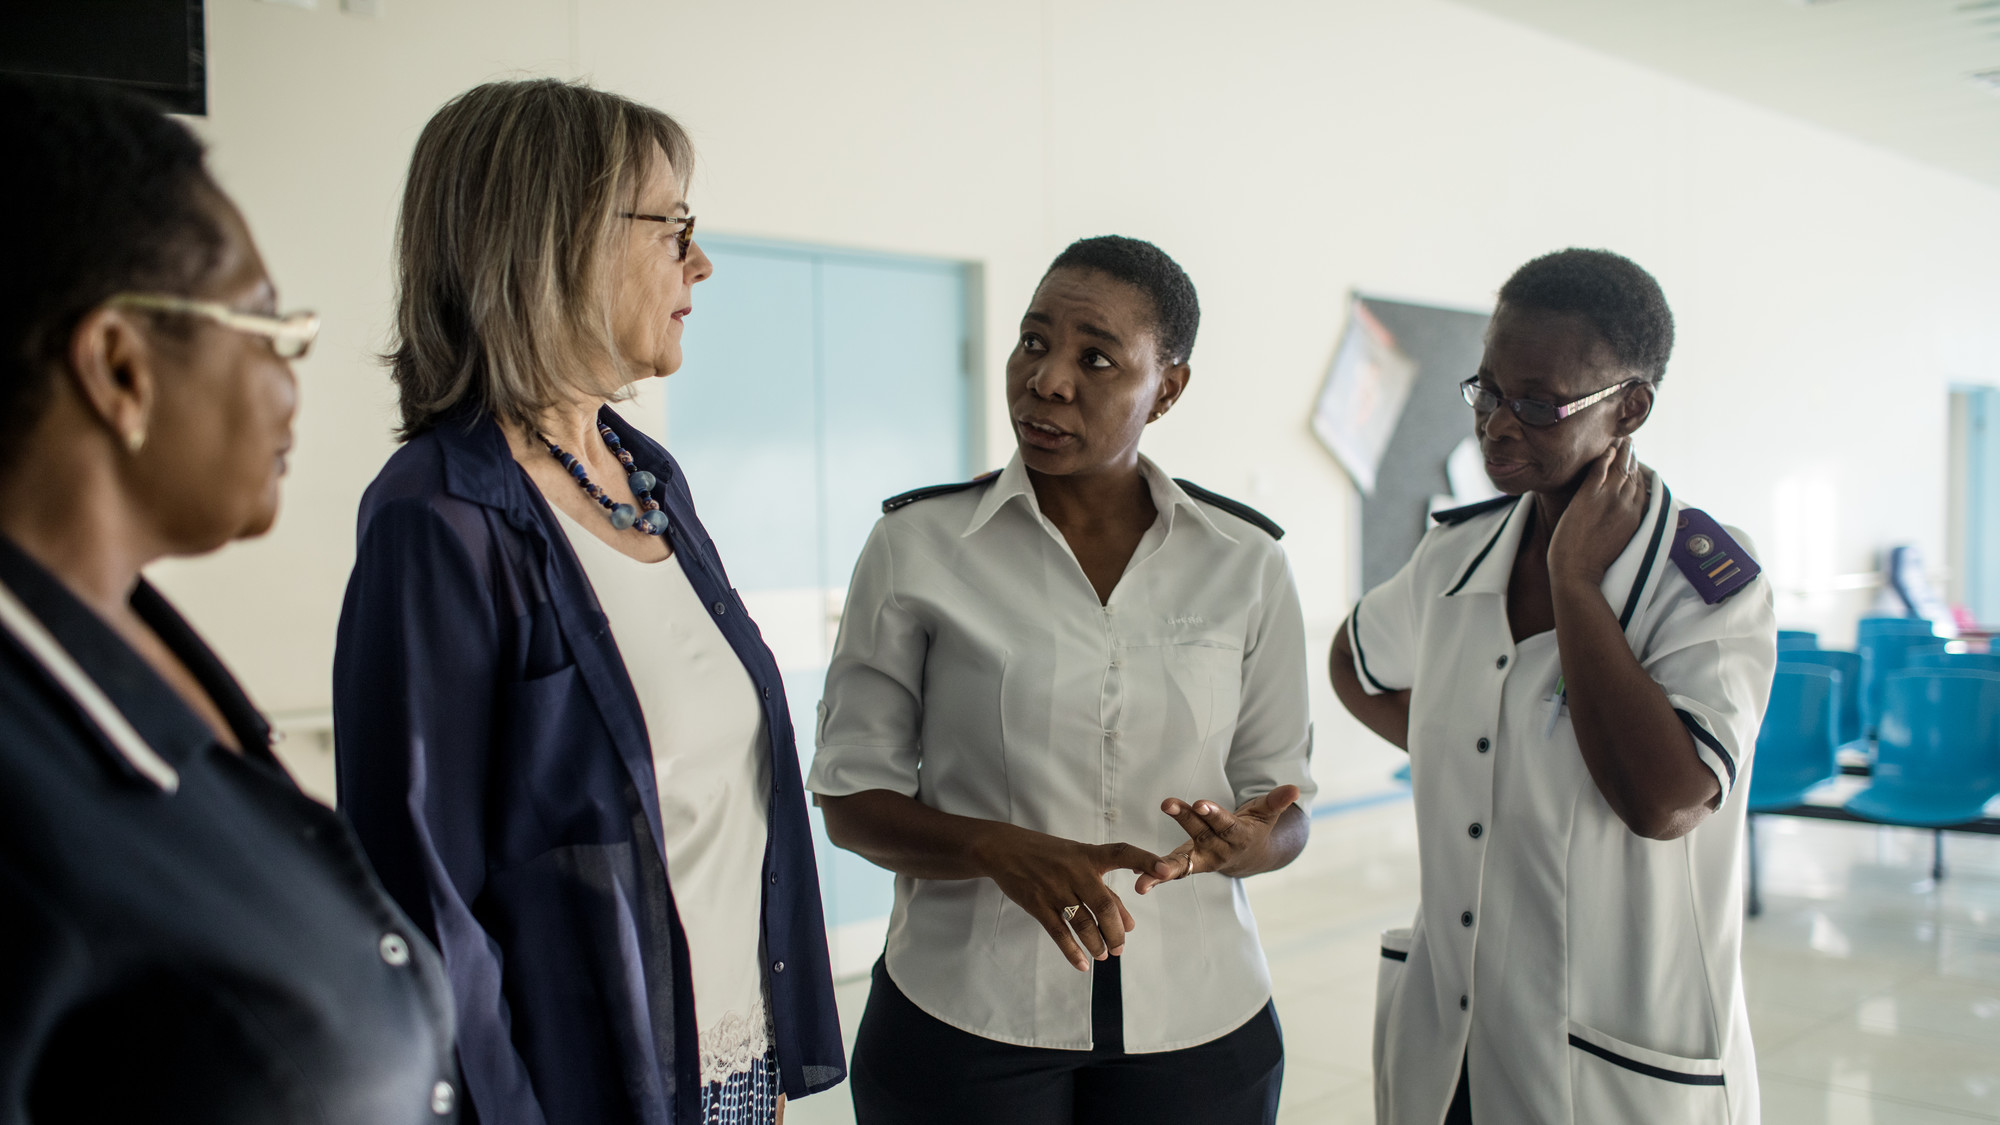 Pamela McQuide (second from left) talks with HIV nurses in a hospital in Namibia.